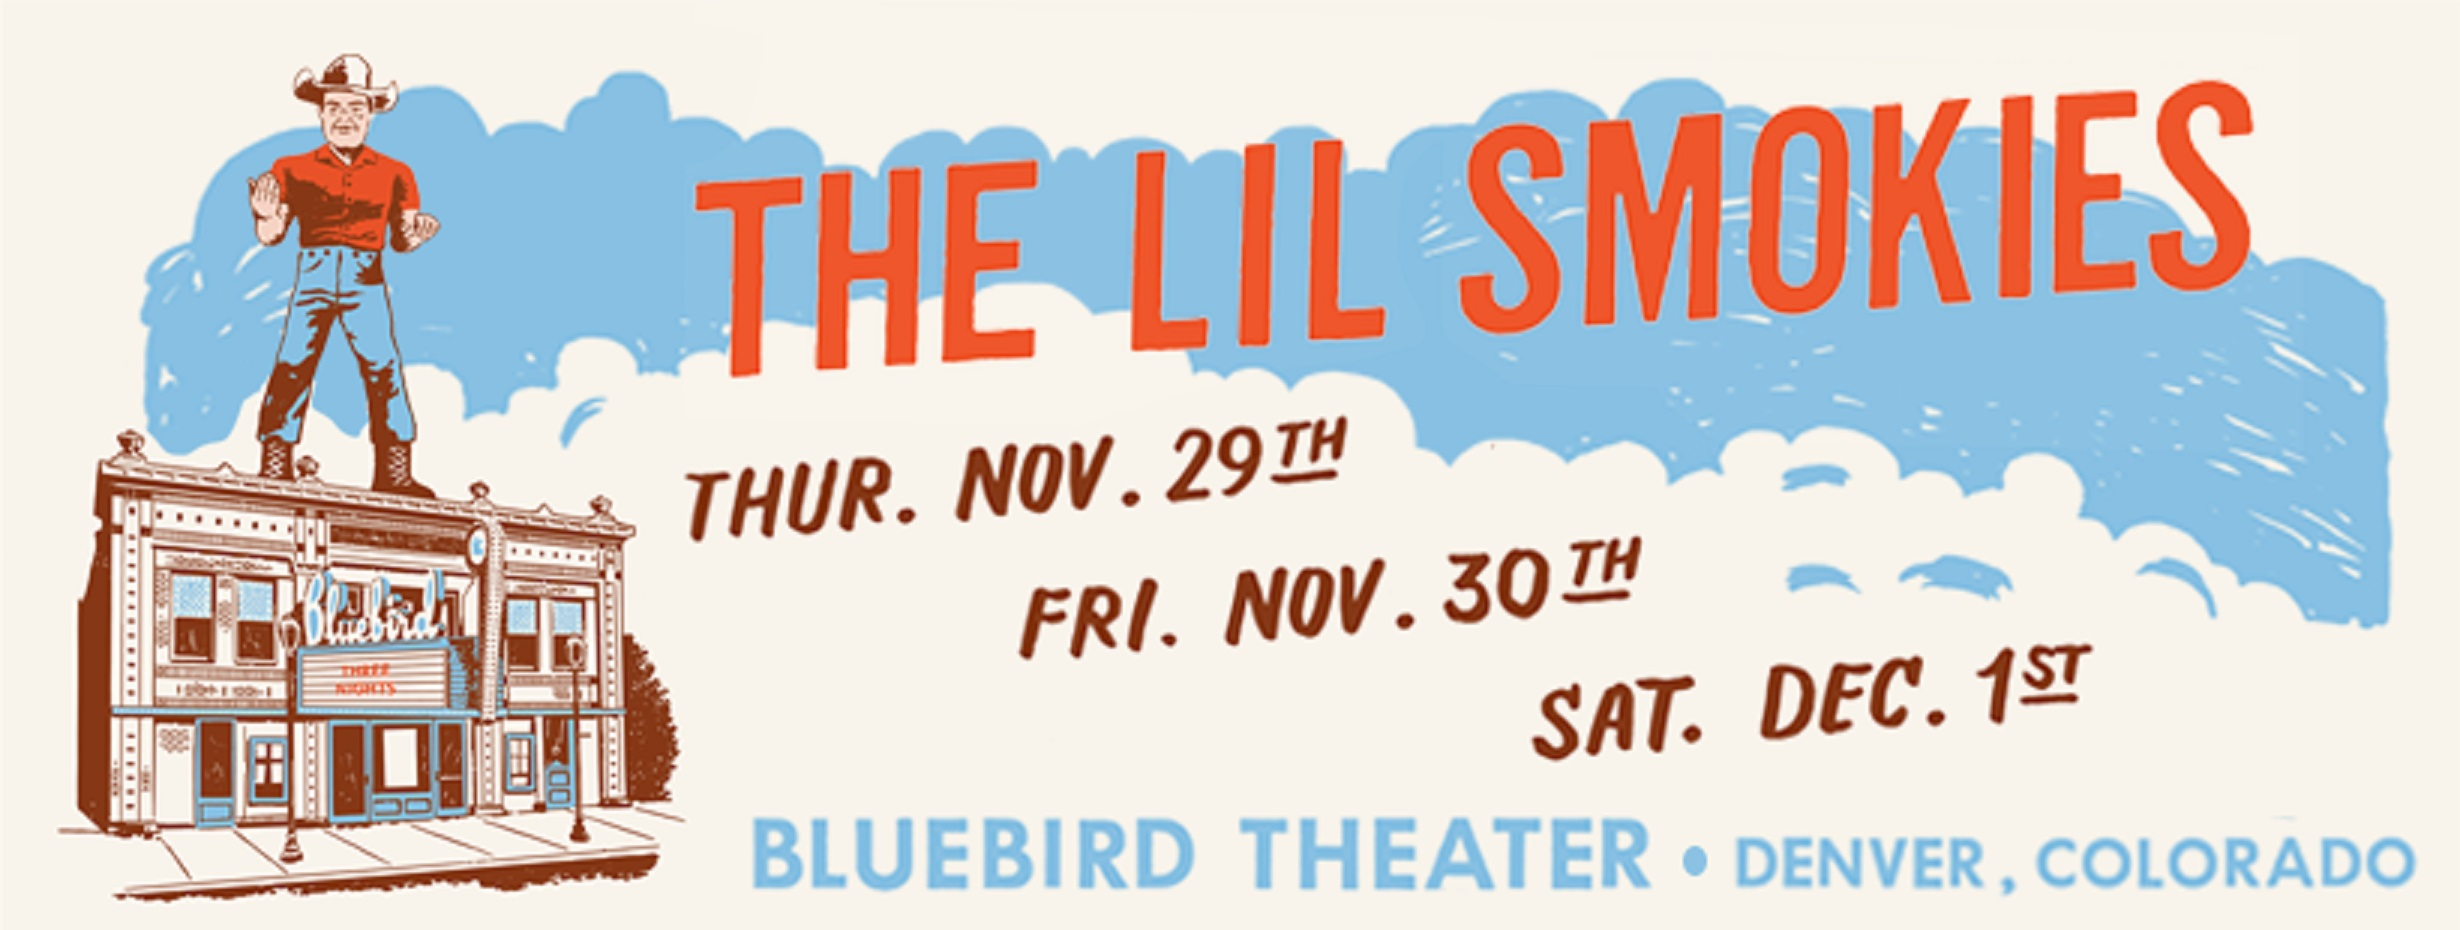 The Lil Smokies are headed to Denver for 3 shows at The Bluebird Theater